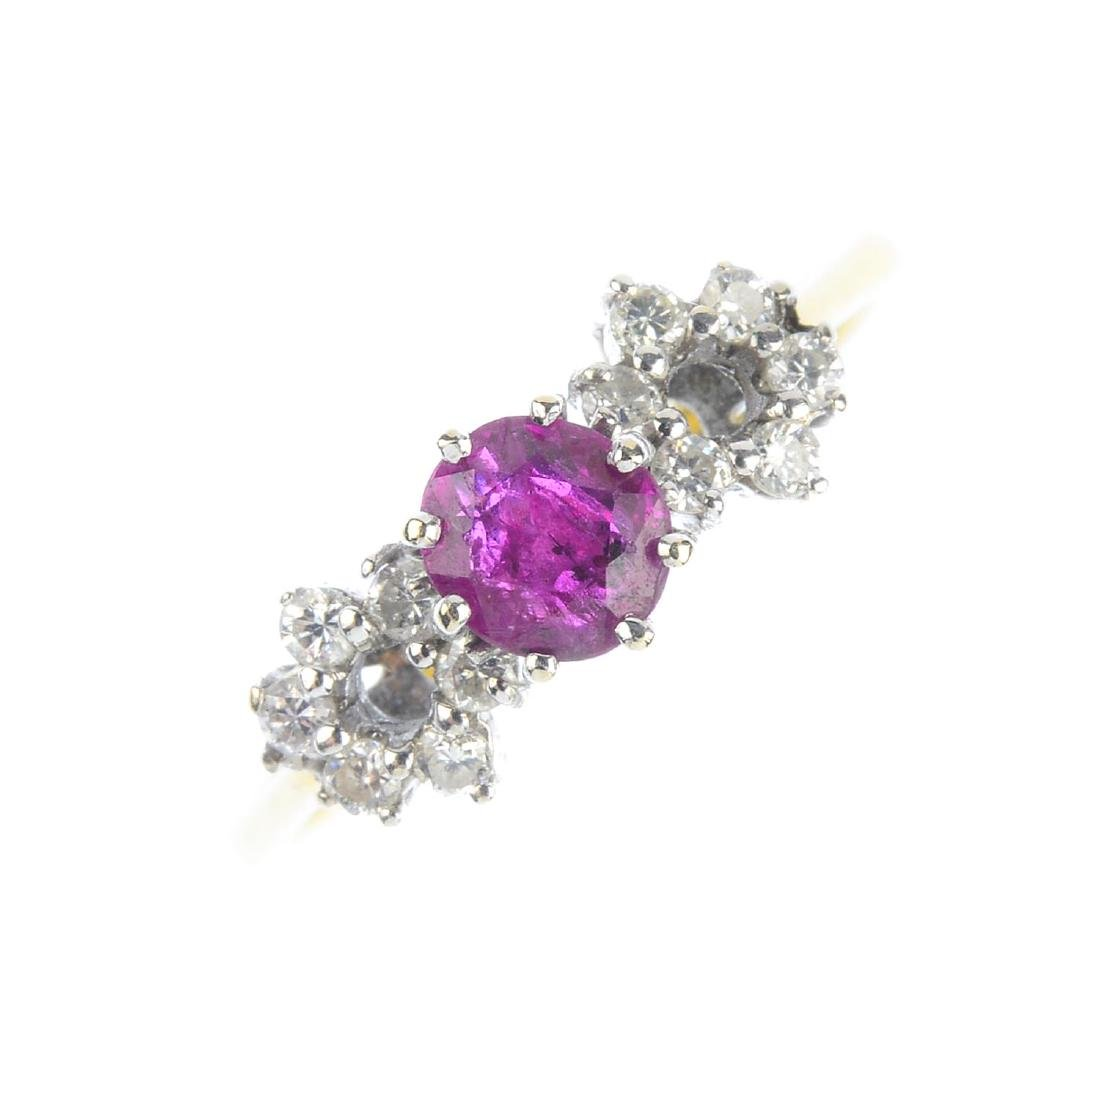 A ruby and diamond ring. The oval-shape ruby, with